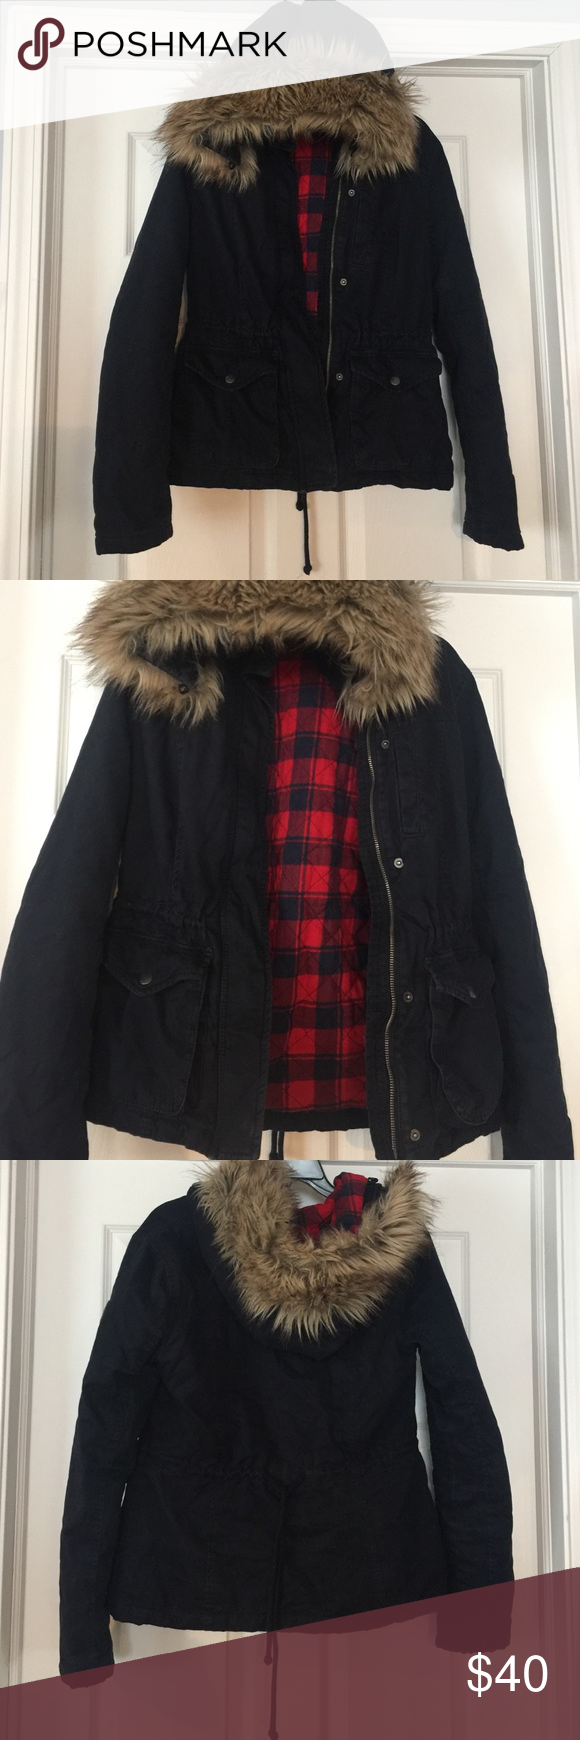 Flannel jacket with fur inside  Hollister cotton parka  Hollister jackets Plaid flannel and Hoods